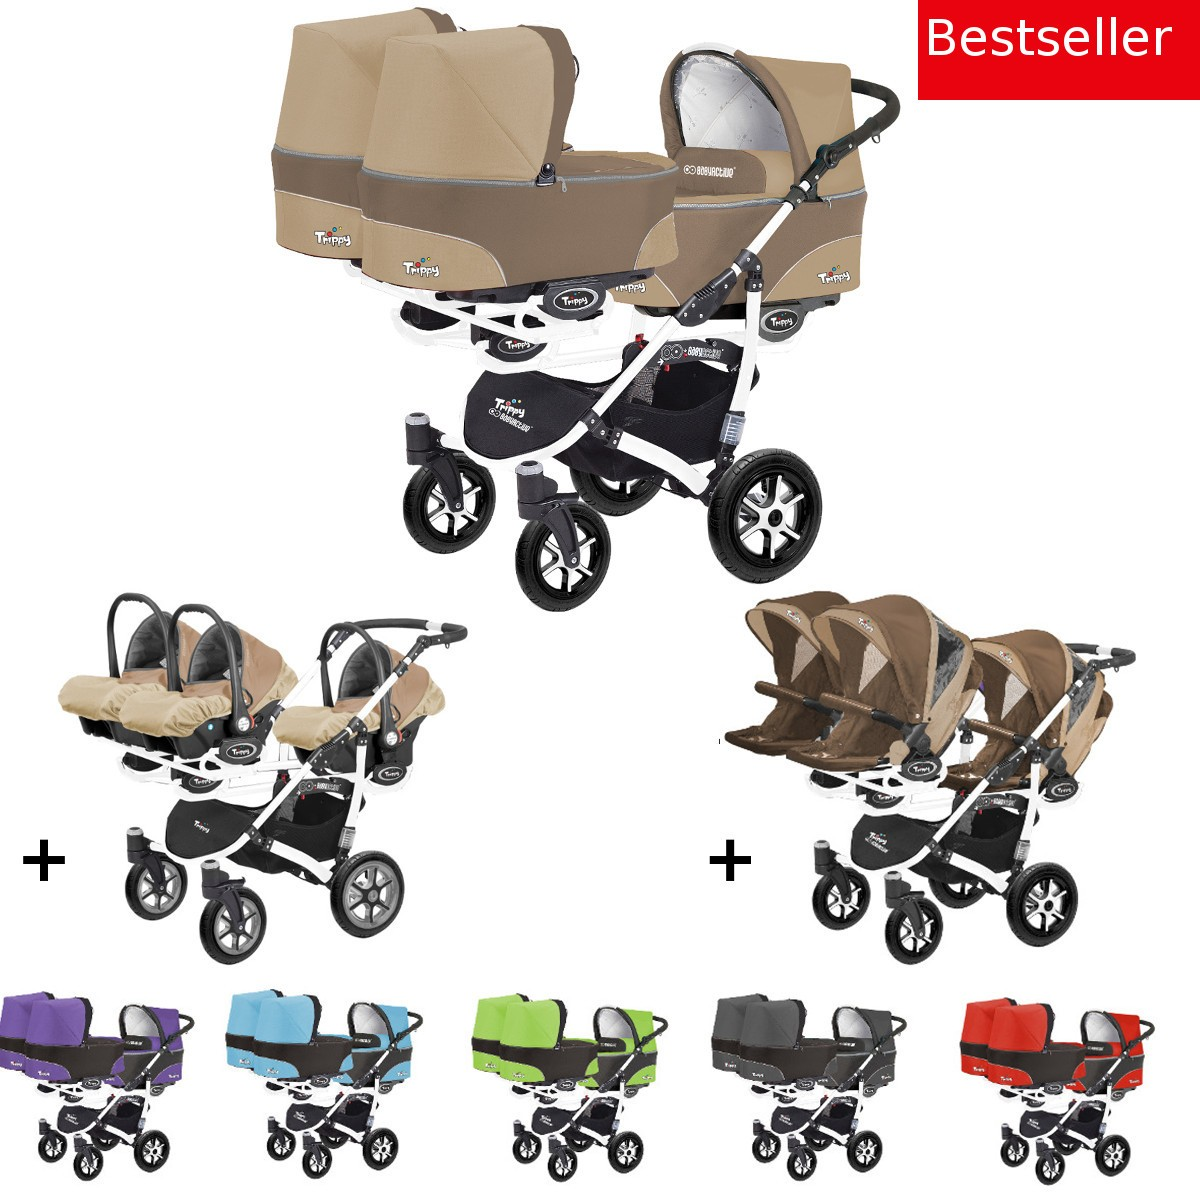 trippy drillings kombi kinderwagen 3in1 komplettset mit. Black Bedroom Furniture Sets. Home Design Ideas